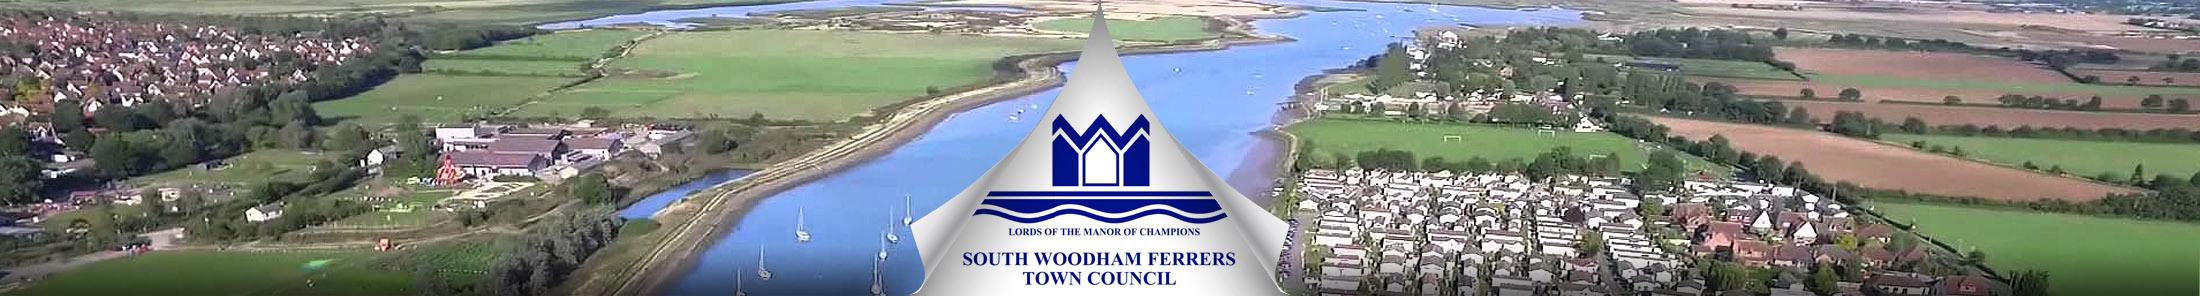 Header Image for South Woodham Ferrers Town Council